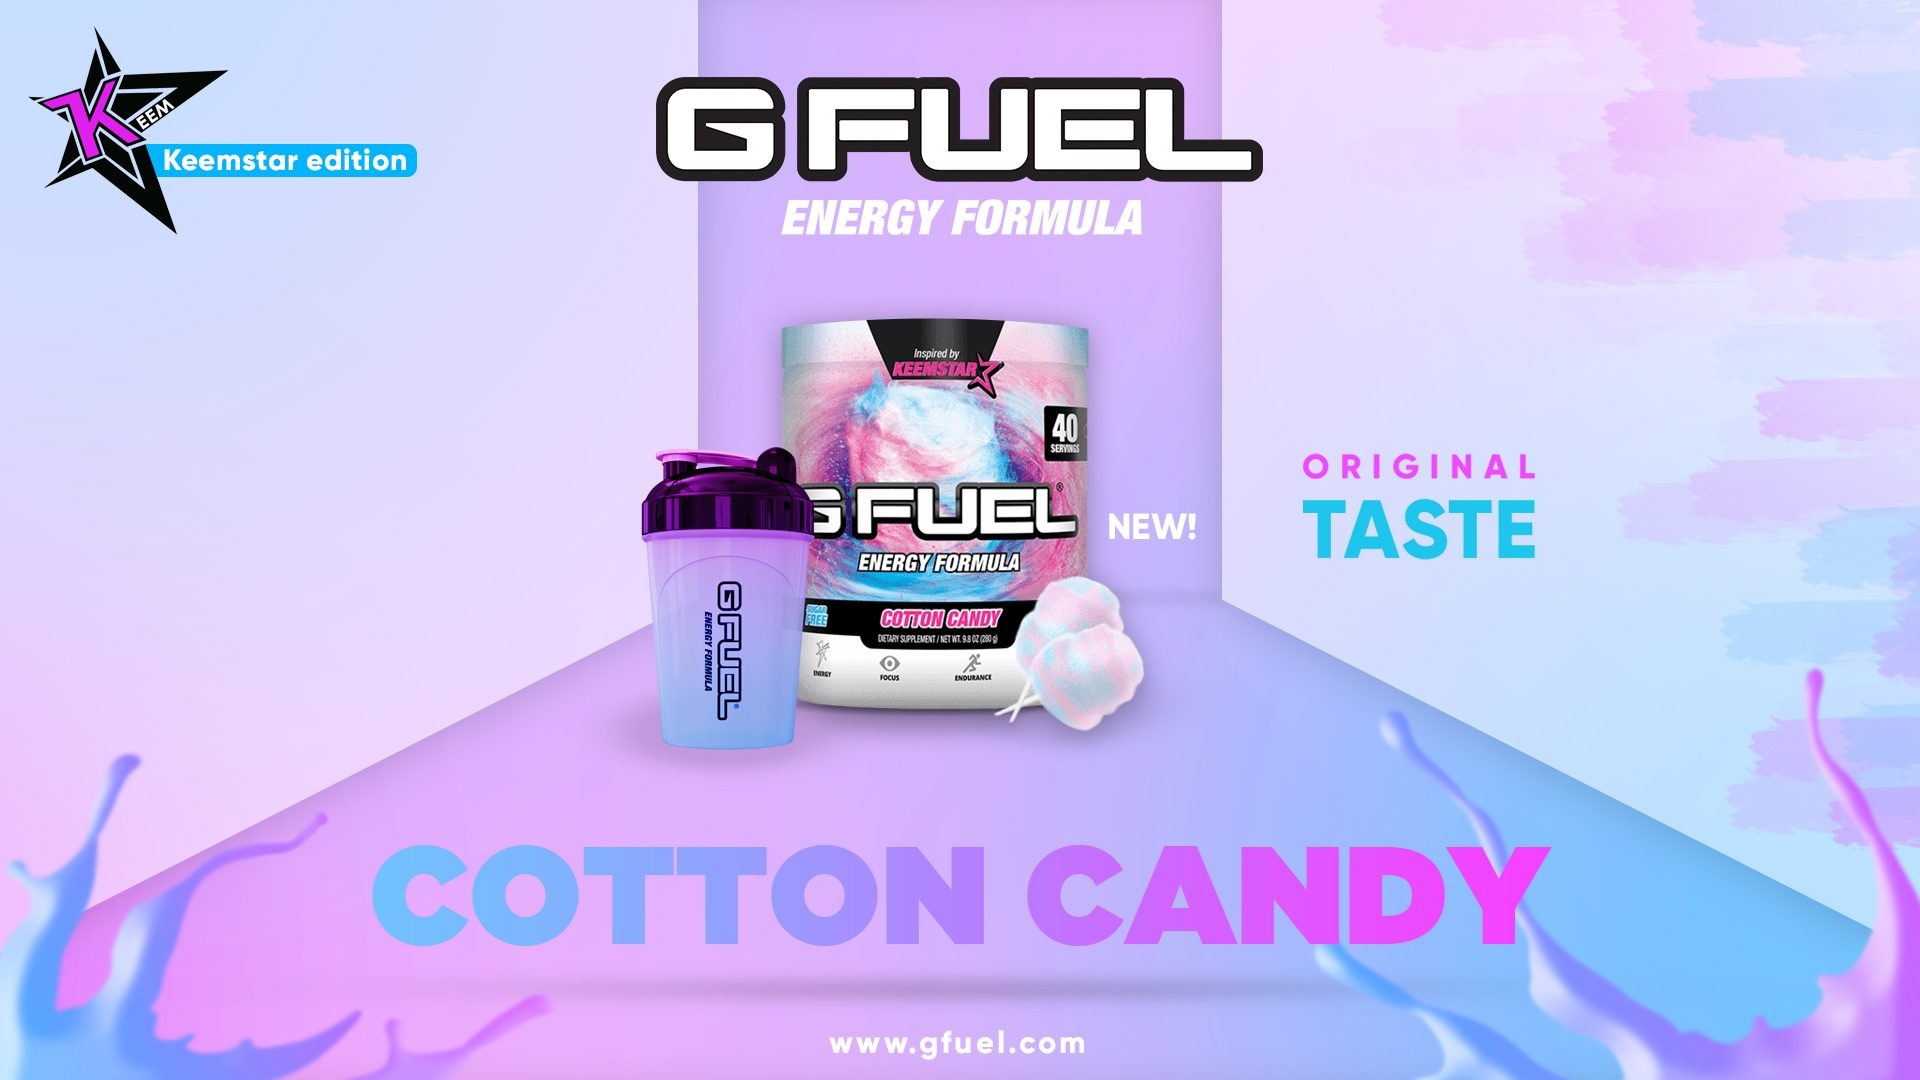 Gfuel Cotton Candy - Advertisement